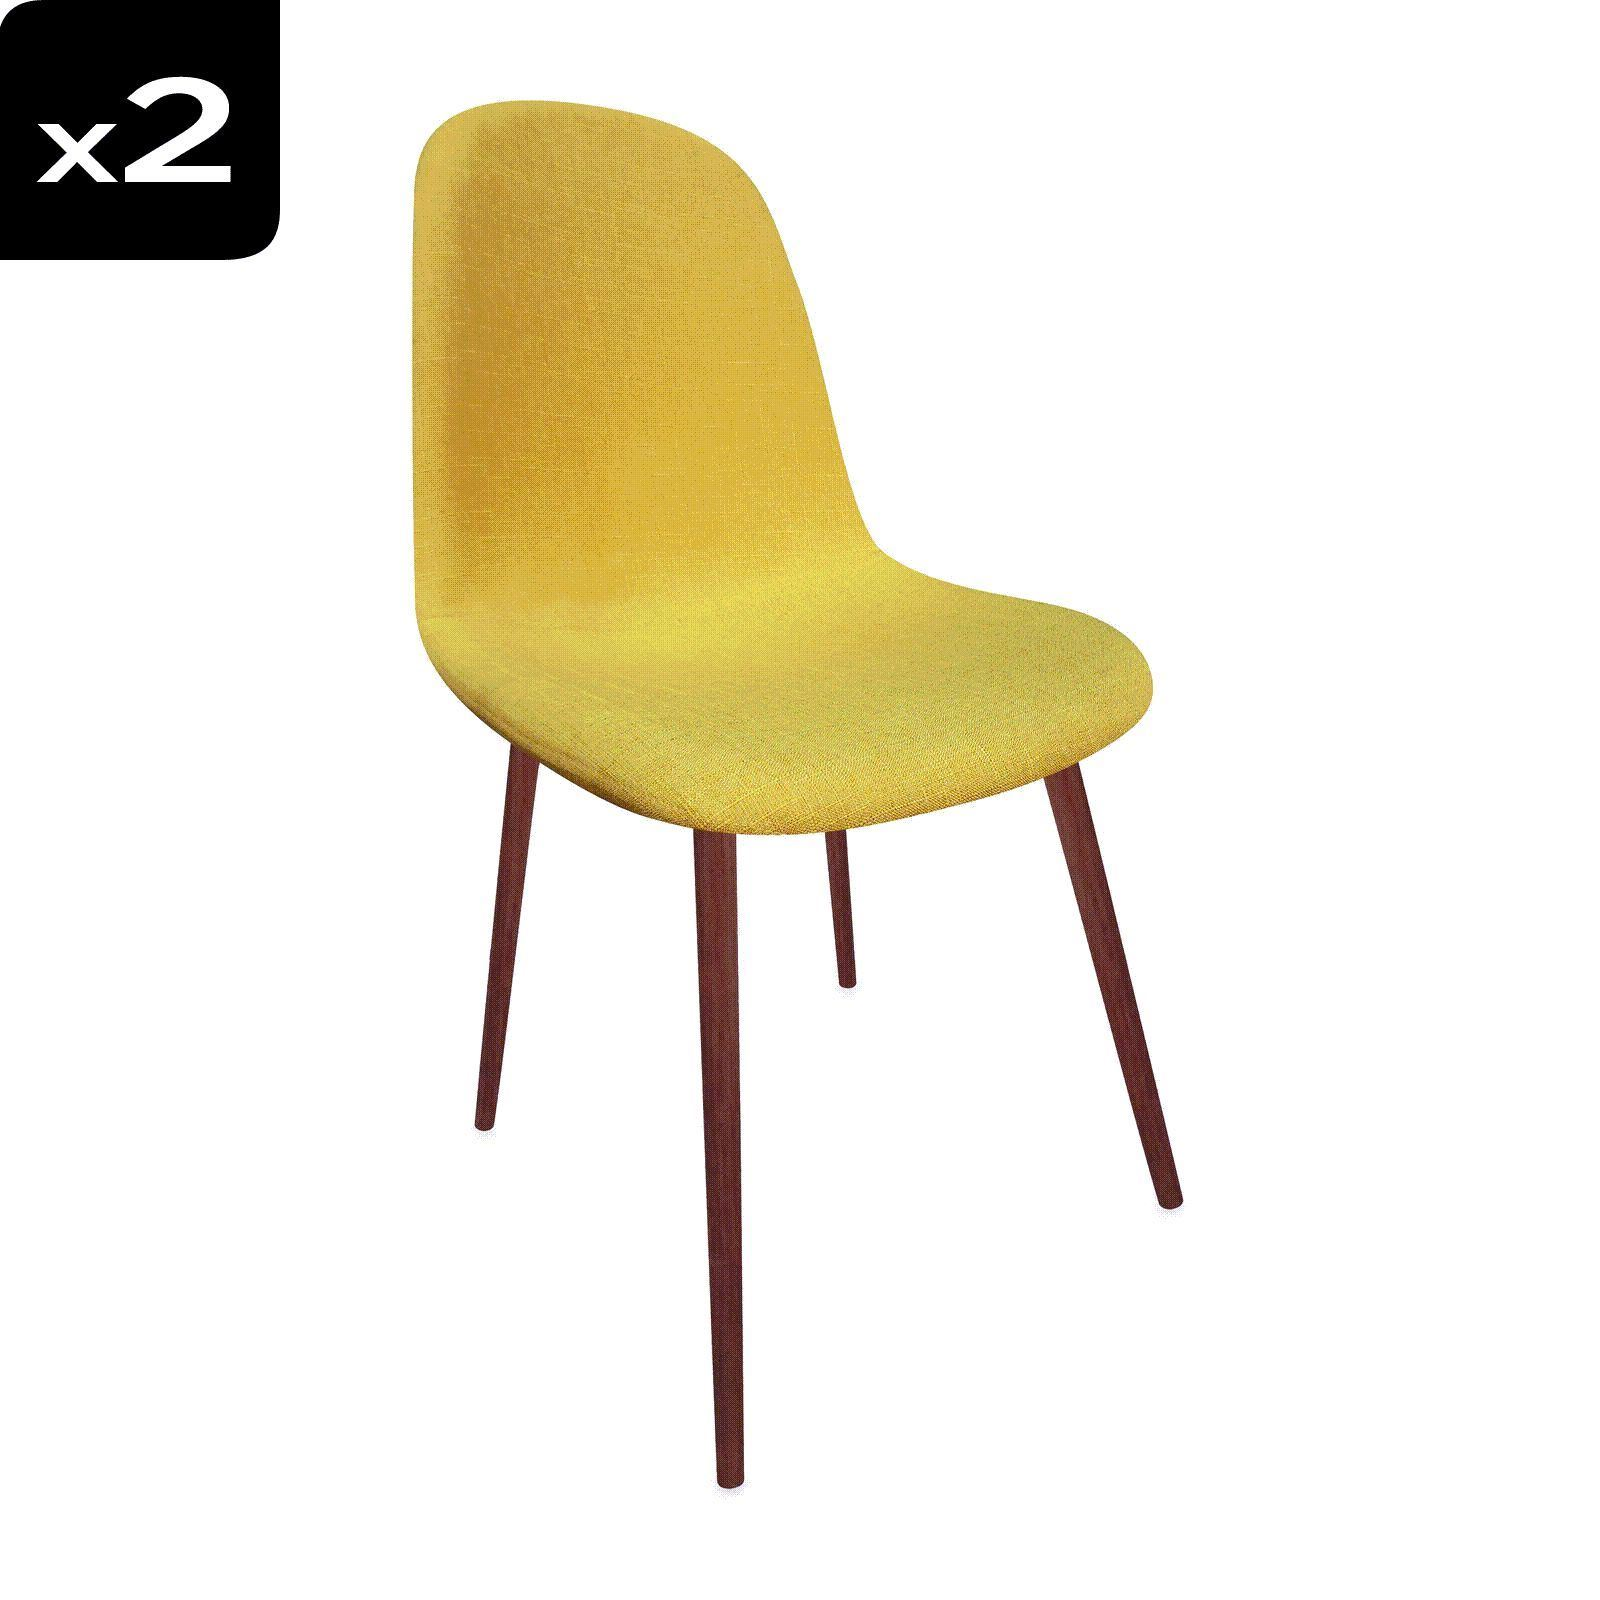 Potiron Lot De 2 Chaises Sixties Vintage Jaune BrandAlley